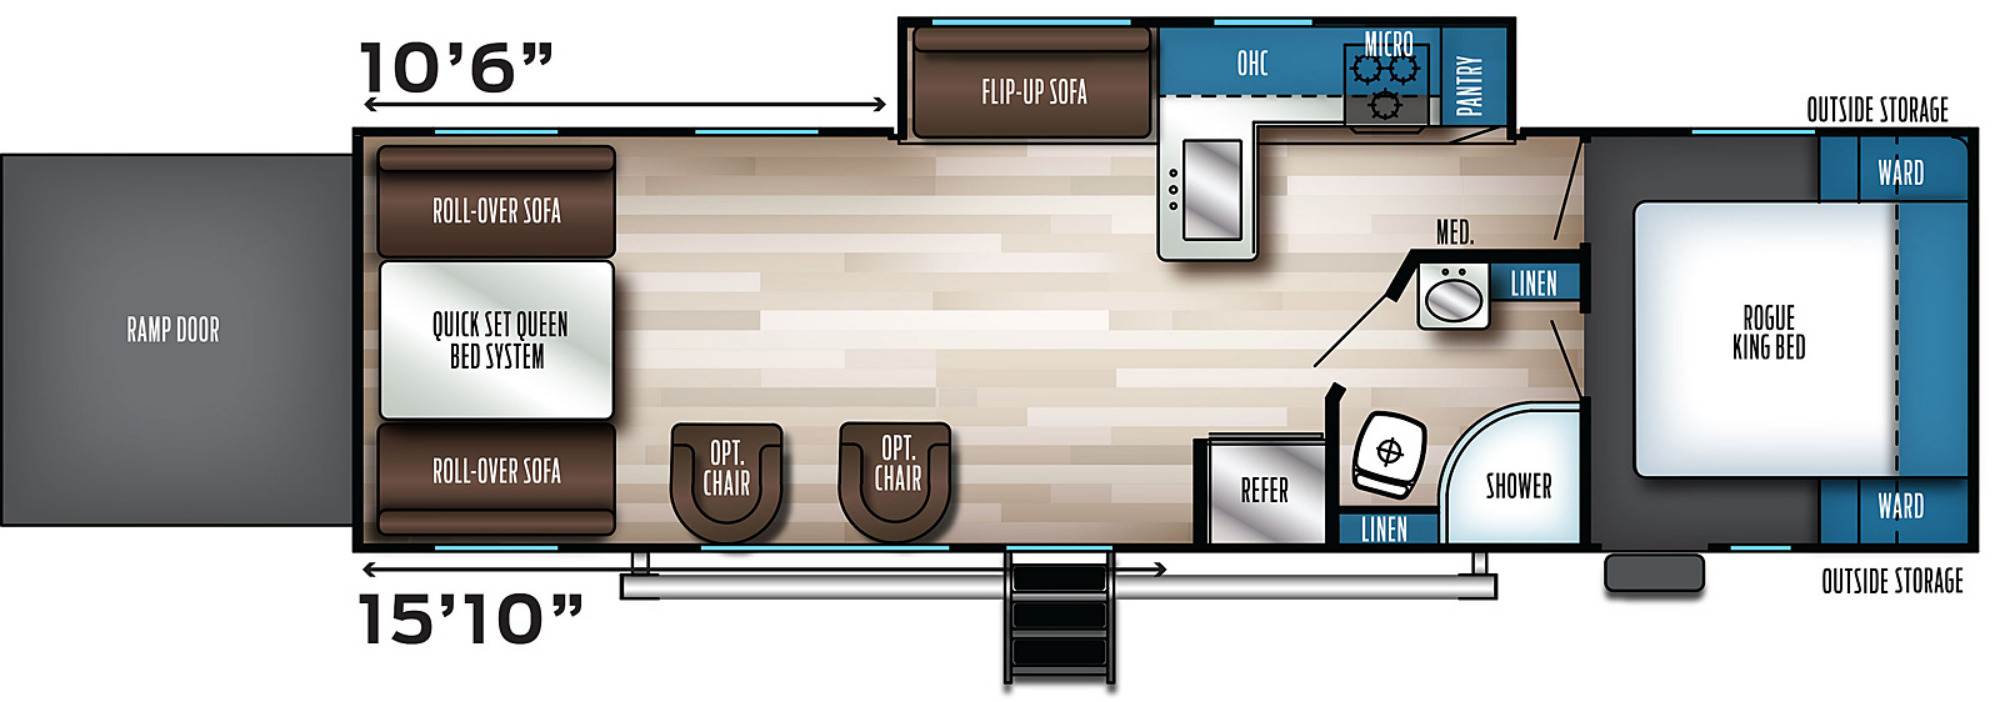 View Floor Plan for 2021 FOREST RIVER ROGUE 29KS